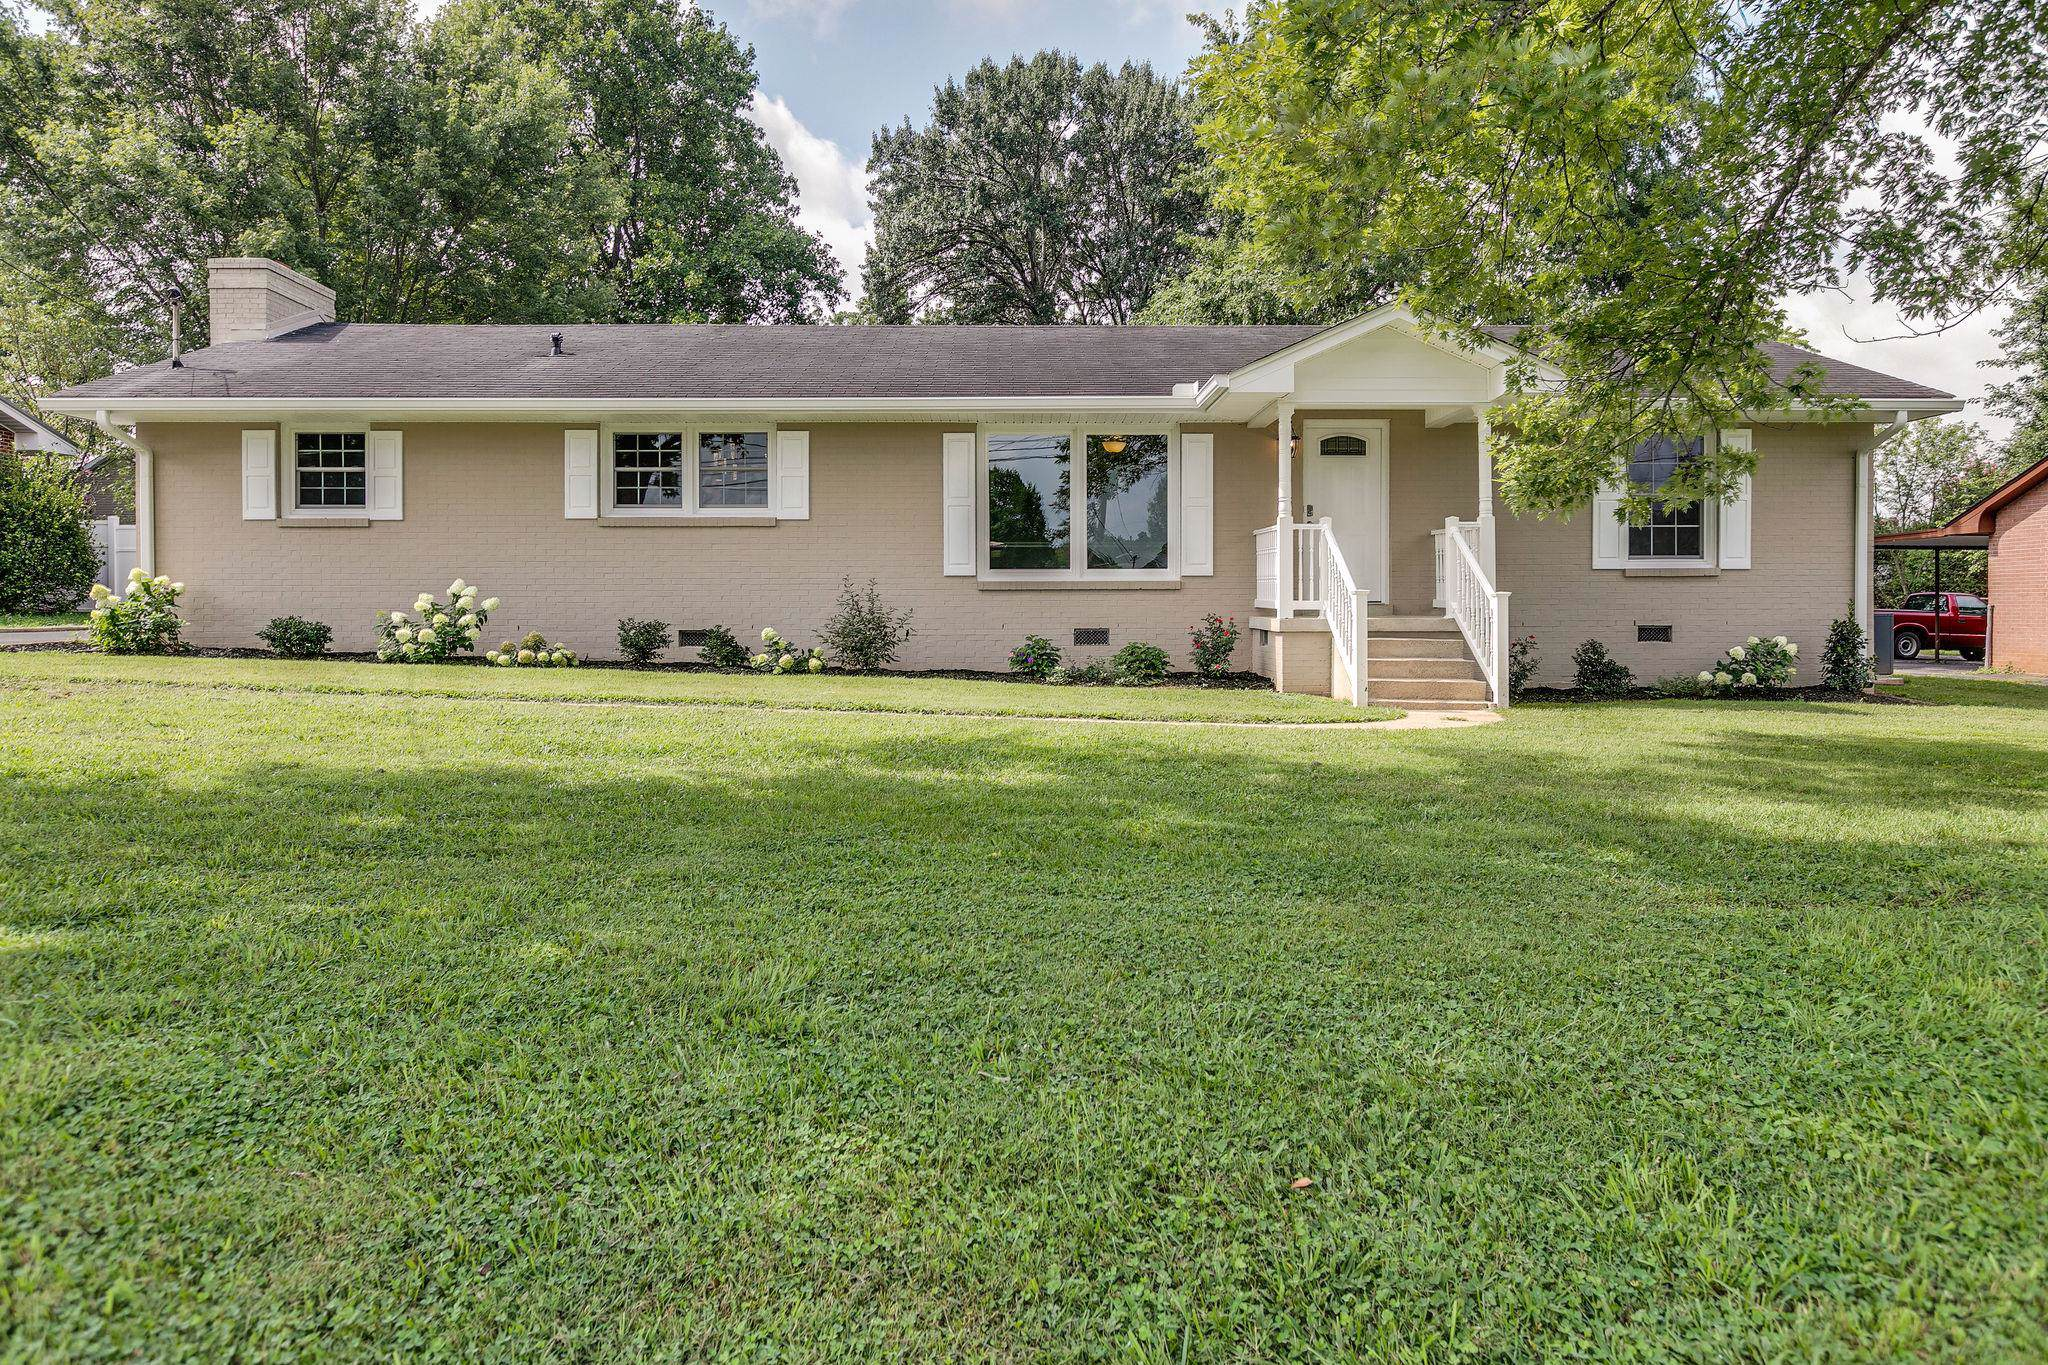 106 Lee, Shelbyville, TN 37160 (MLS #RTC2049675) :: Oak Street Group